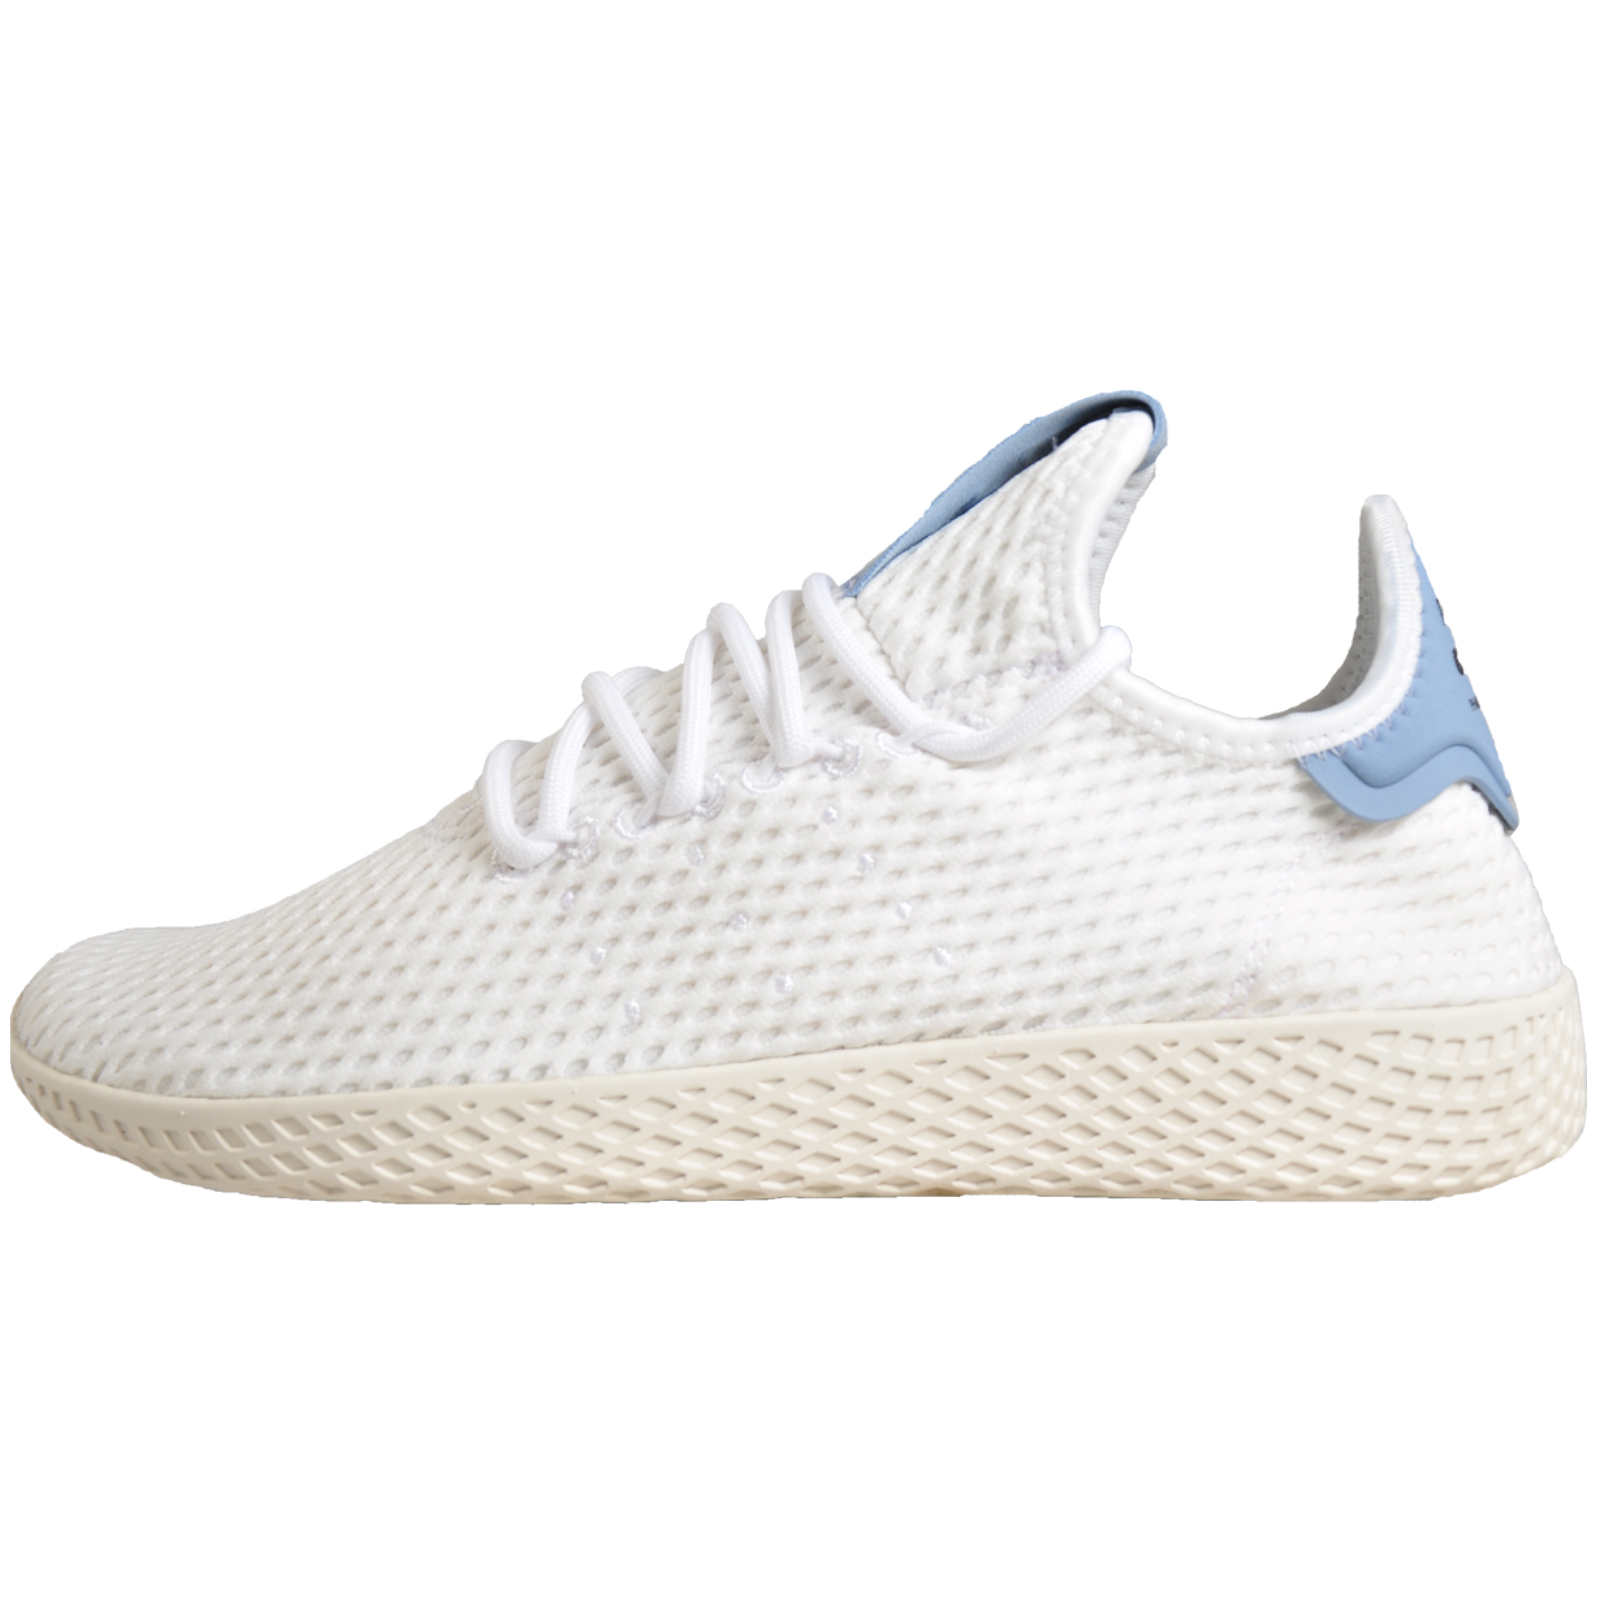 cc2d5eea36bf5 Adidas Originals Pharrell Williams x Tennis Hu Mens Ltd Edition Retro  Classic Trainers White. Manufacturers code  BY8718